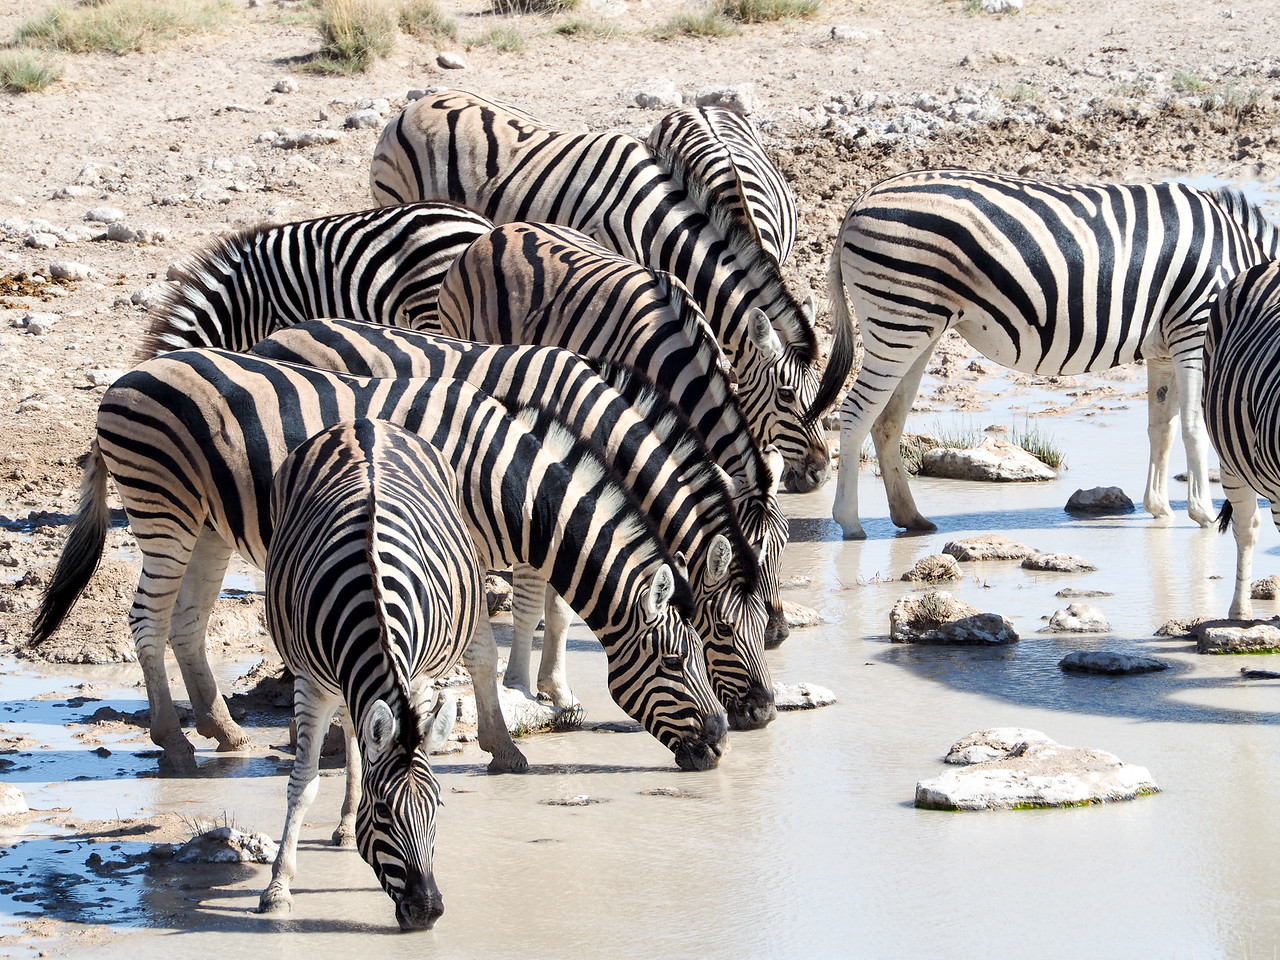 Zebras at a watering hole in Etosha National Park